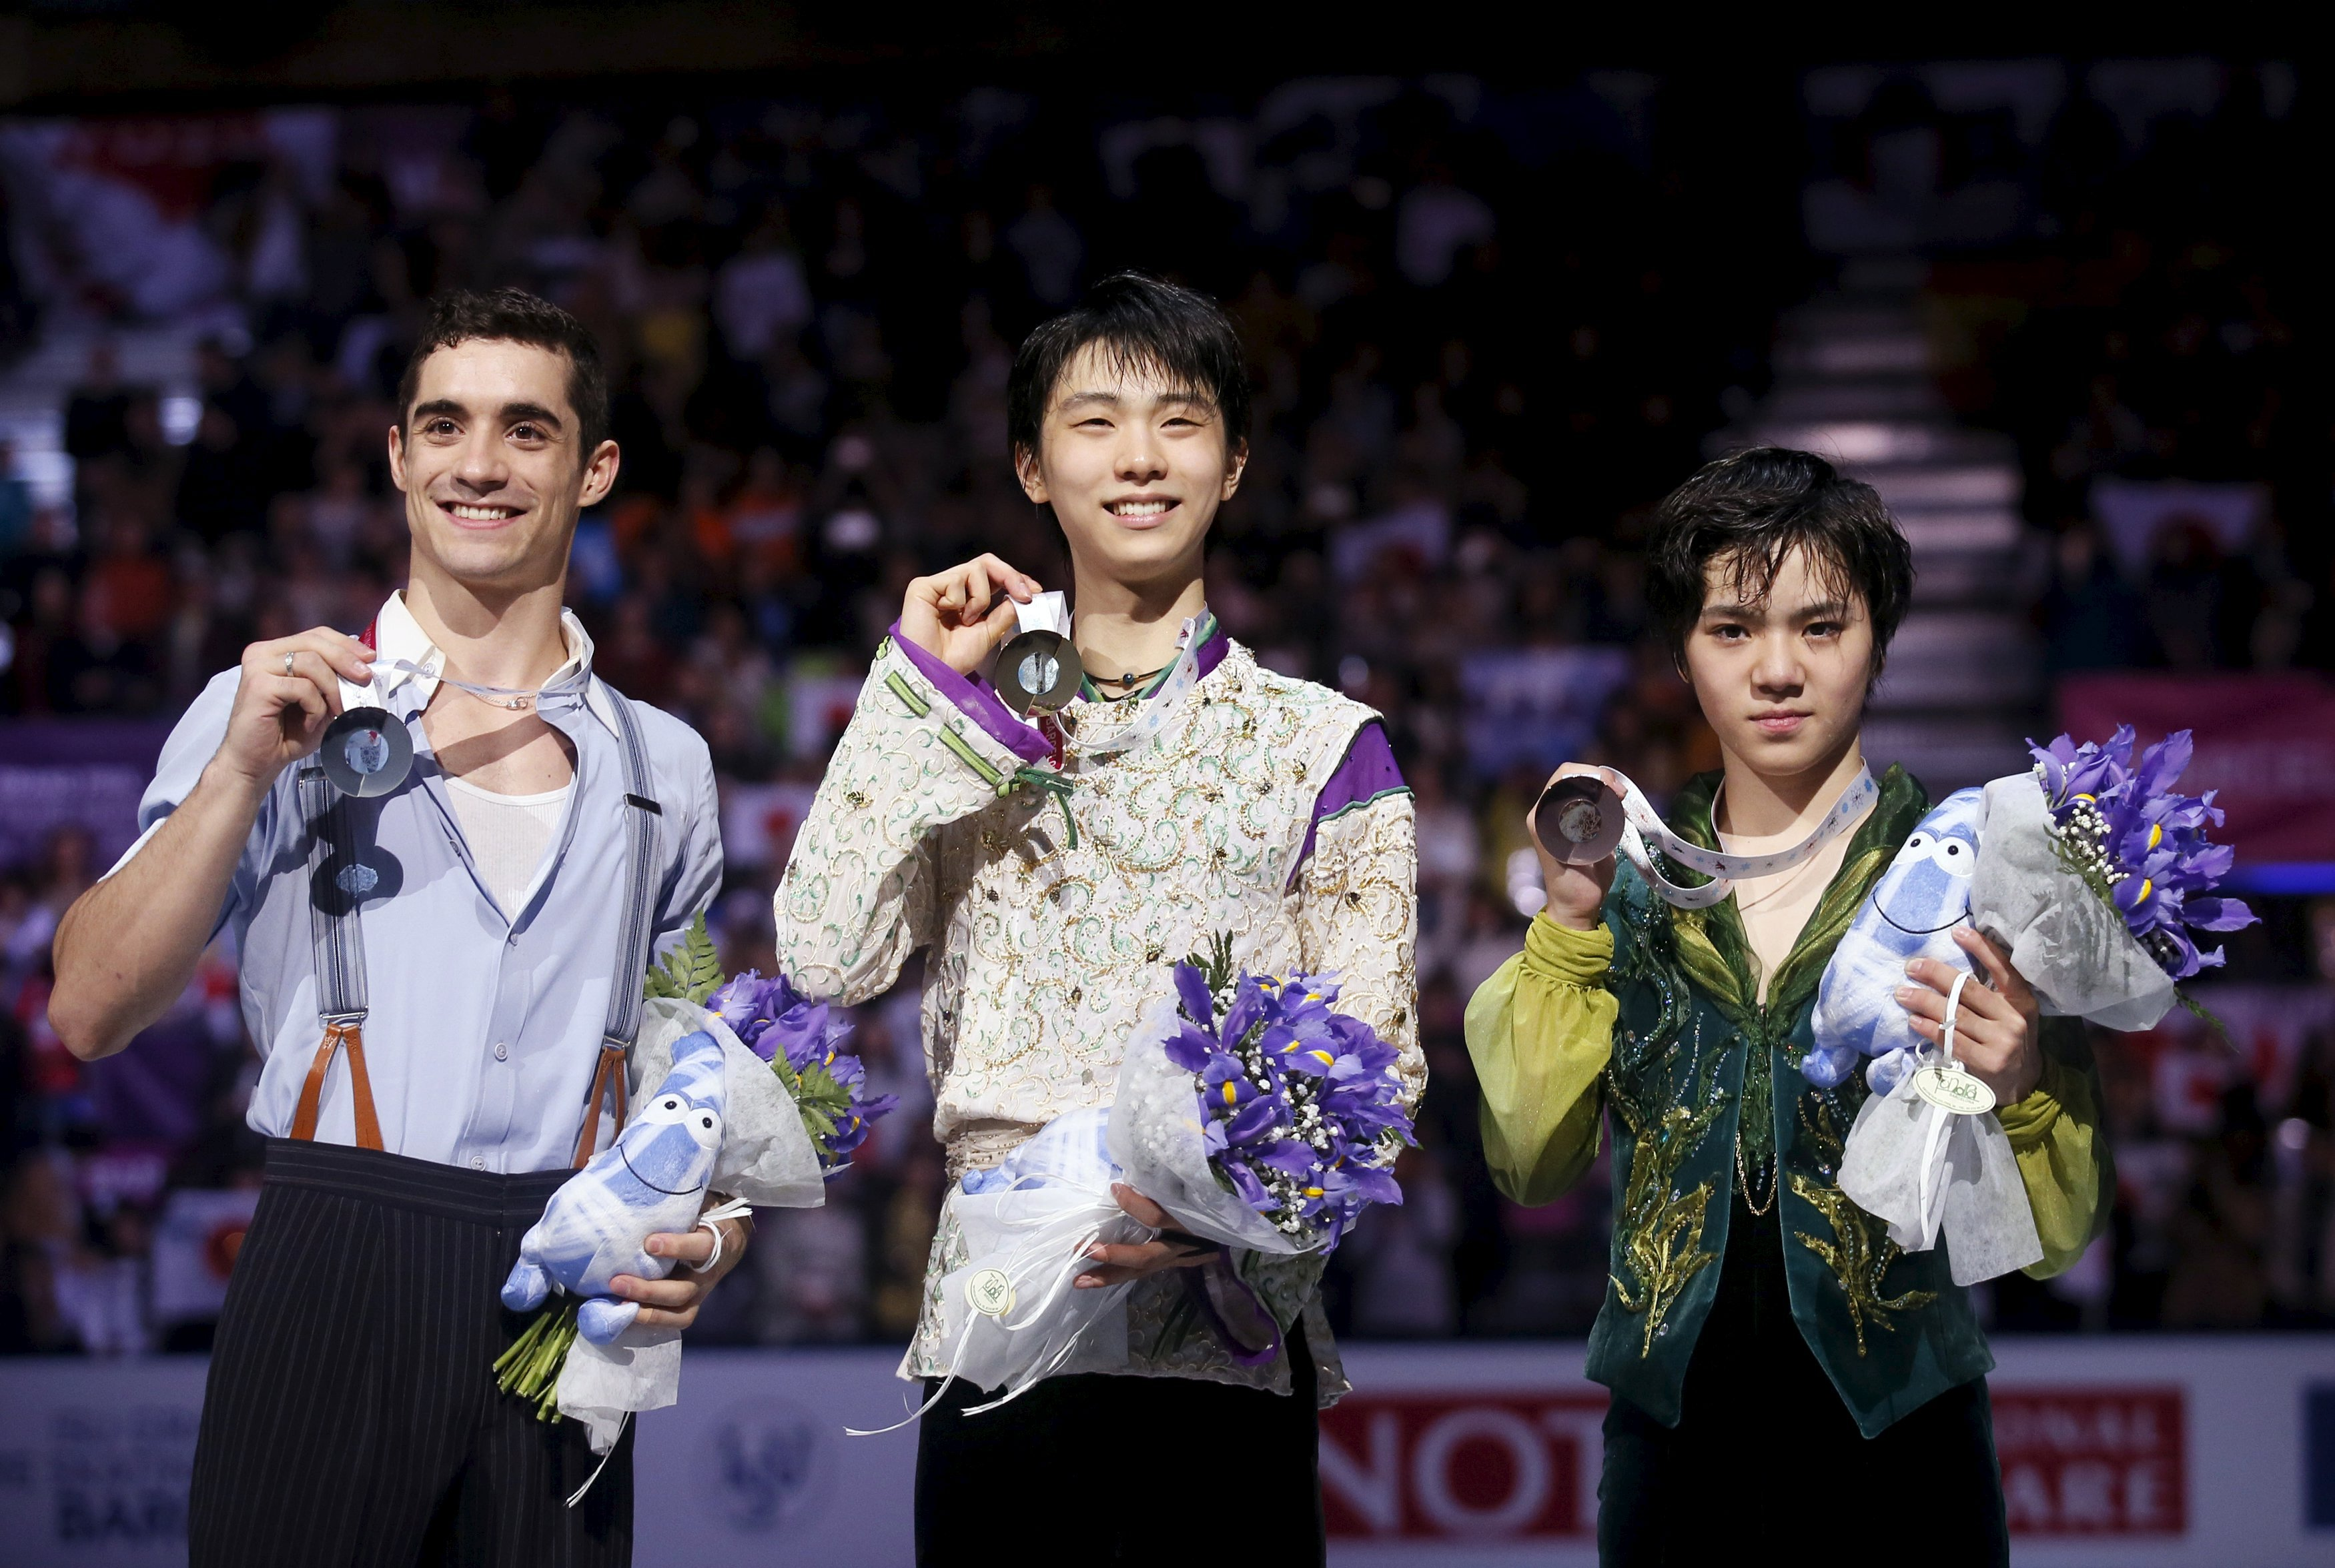 Gold medal winner of the men's free program Yuzuru Hanyu (C) of Japan, silver medal winner Javier Fernandez (L) of Spain and bronze medal winner Shoma Uno of Japan during the medal ceremony at the ISU Grand Prix of Figure Skating final in Barcelona, Spain, December 12, 2015. REUTERS/Albert Gea